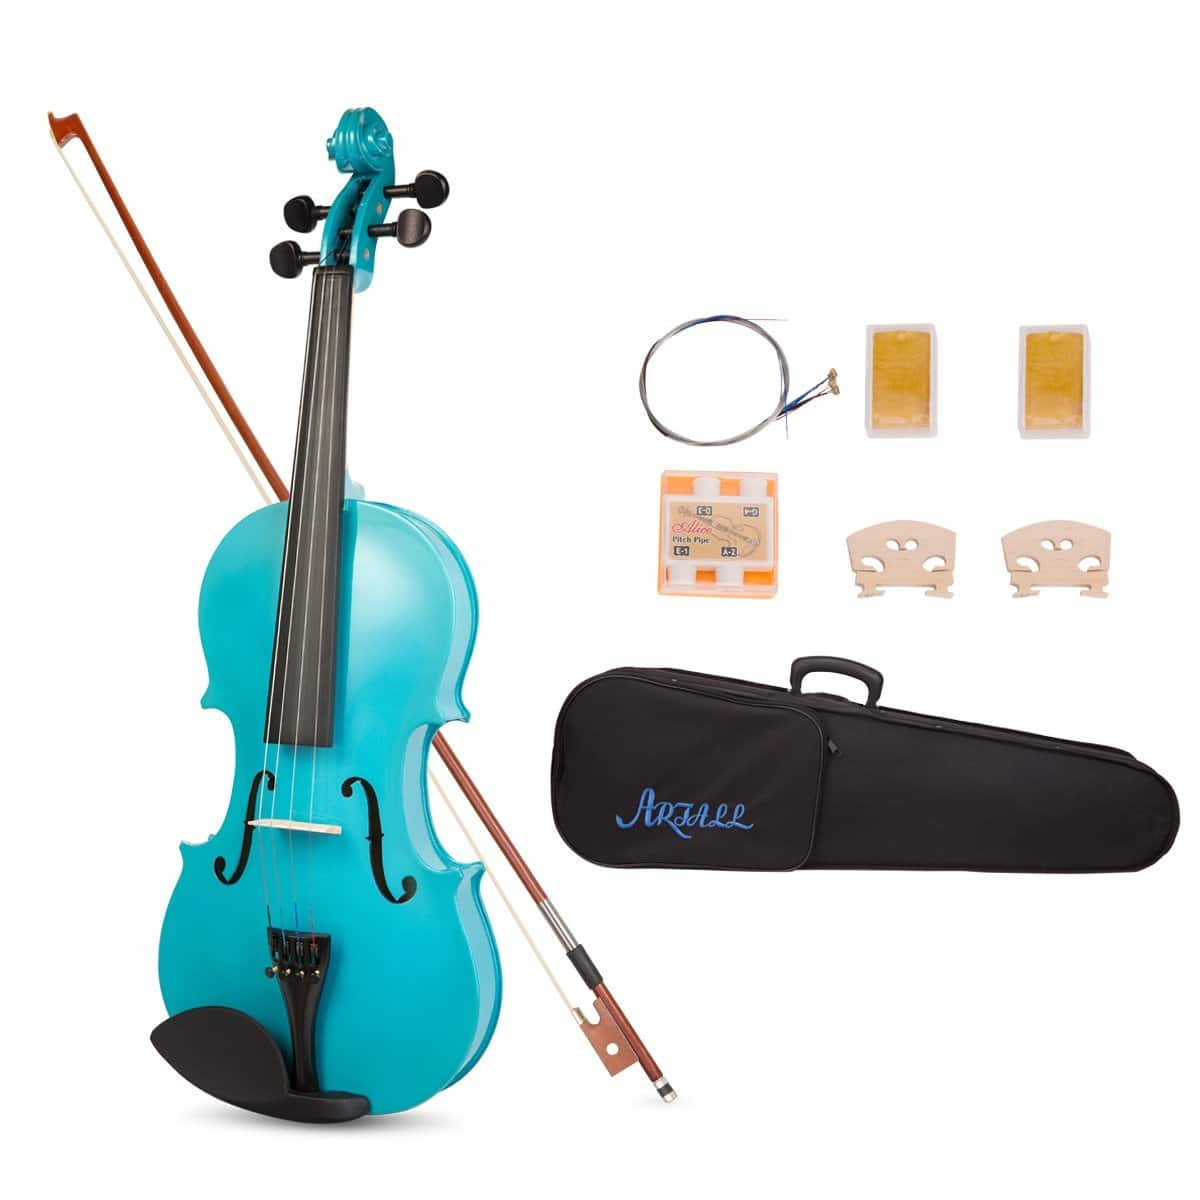 Acoustic Violin Starter Kit with Case, Bow & Accessories $39.99 AC